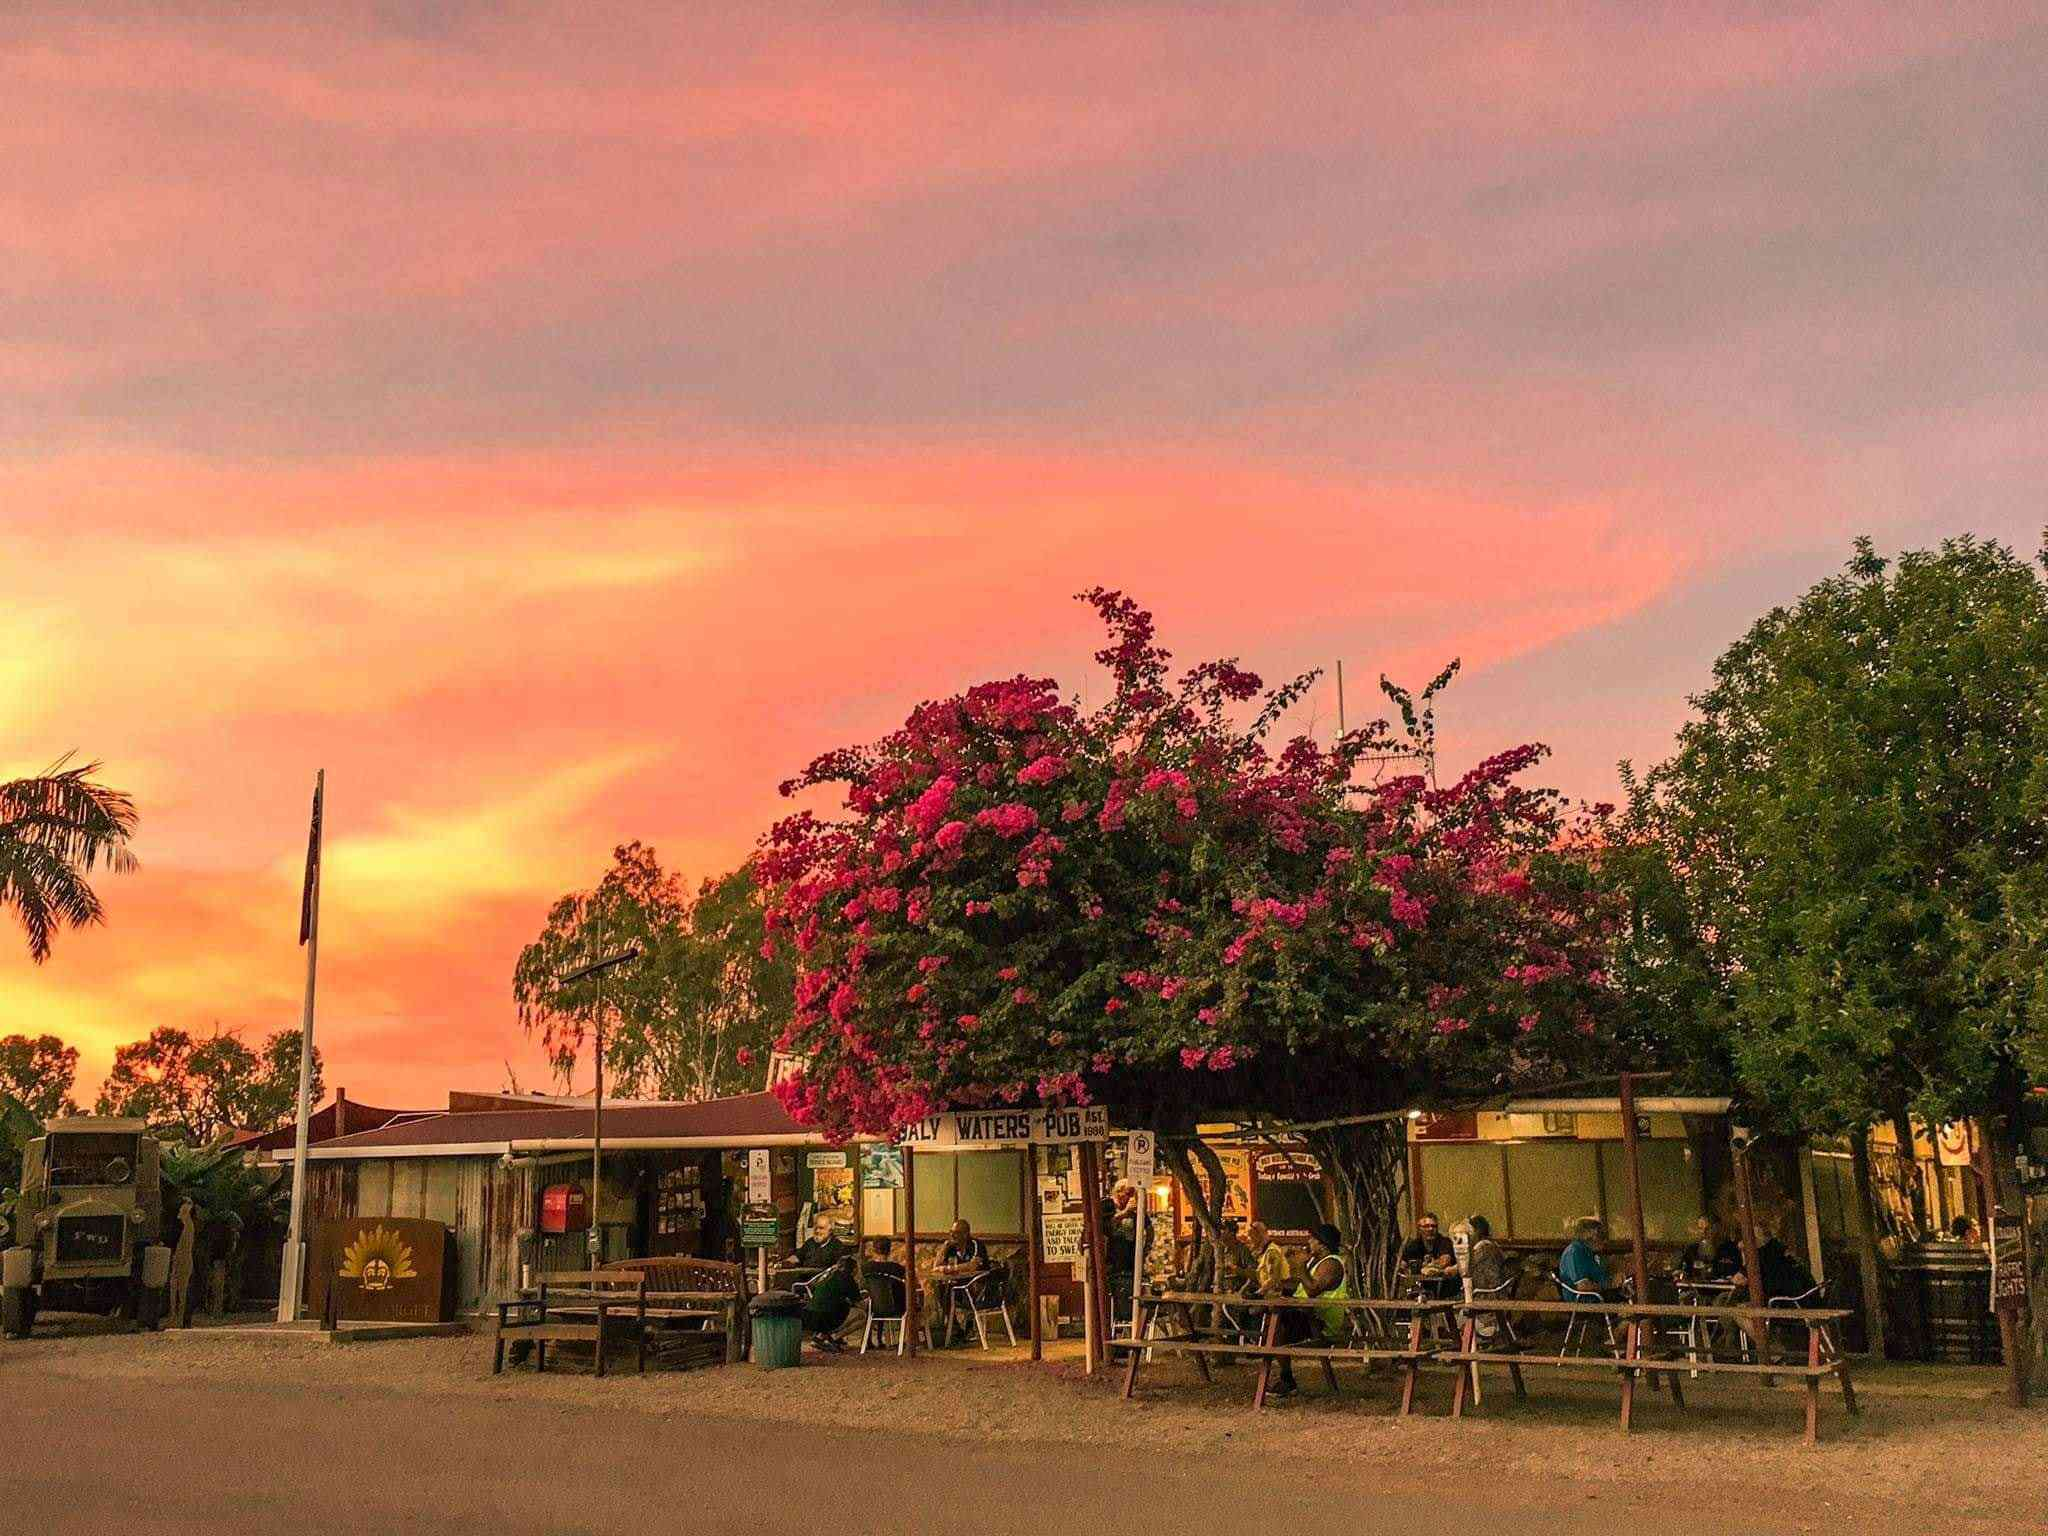 Sunset behind Daly Waters pub with pink flowers